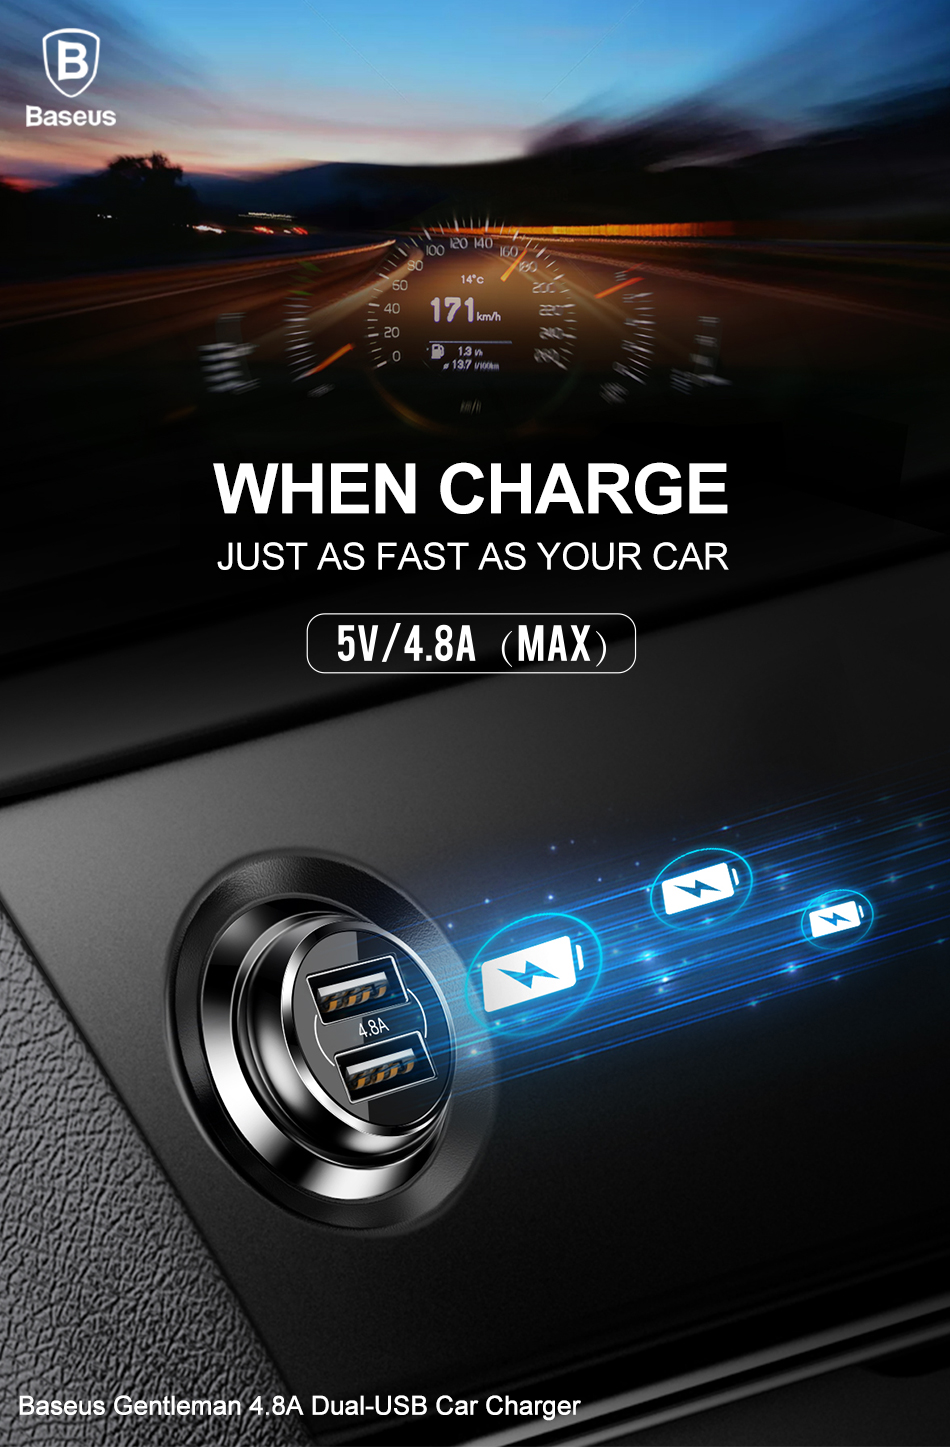 Baseus 4.8A Dual USB Ports Fast Car Charger For iPhone X 8Plus Oneplus5 Xiaomi 6 Mi A1 Tablet